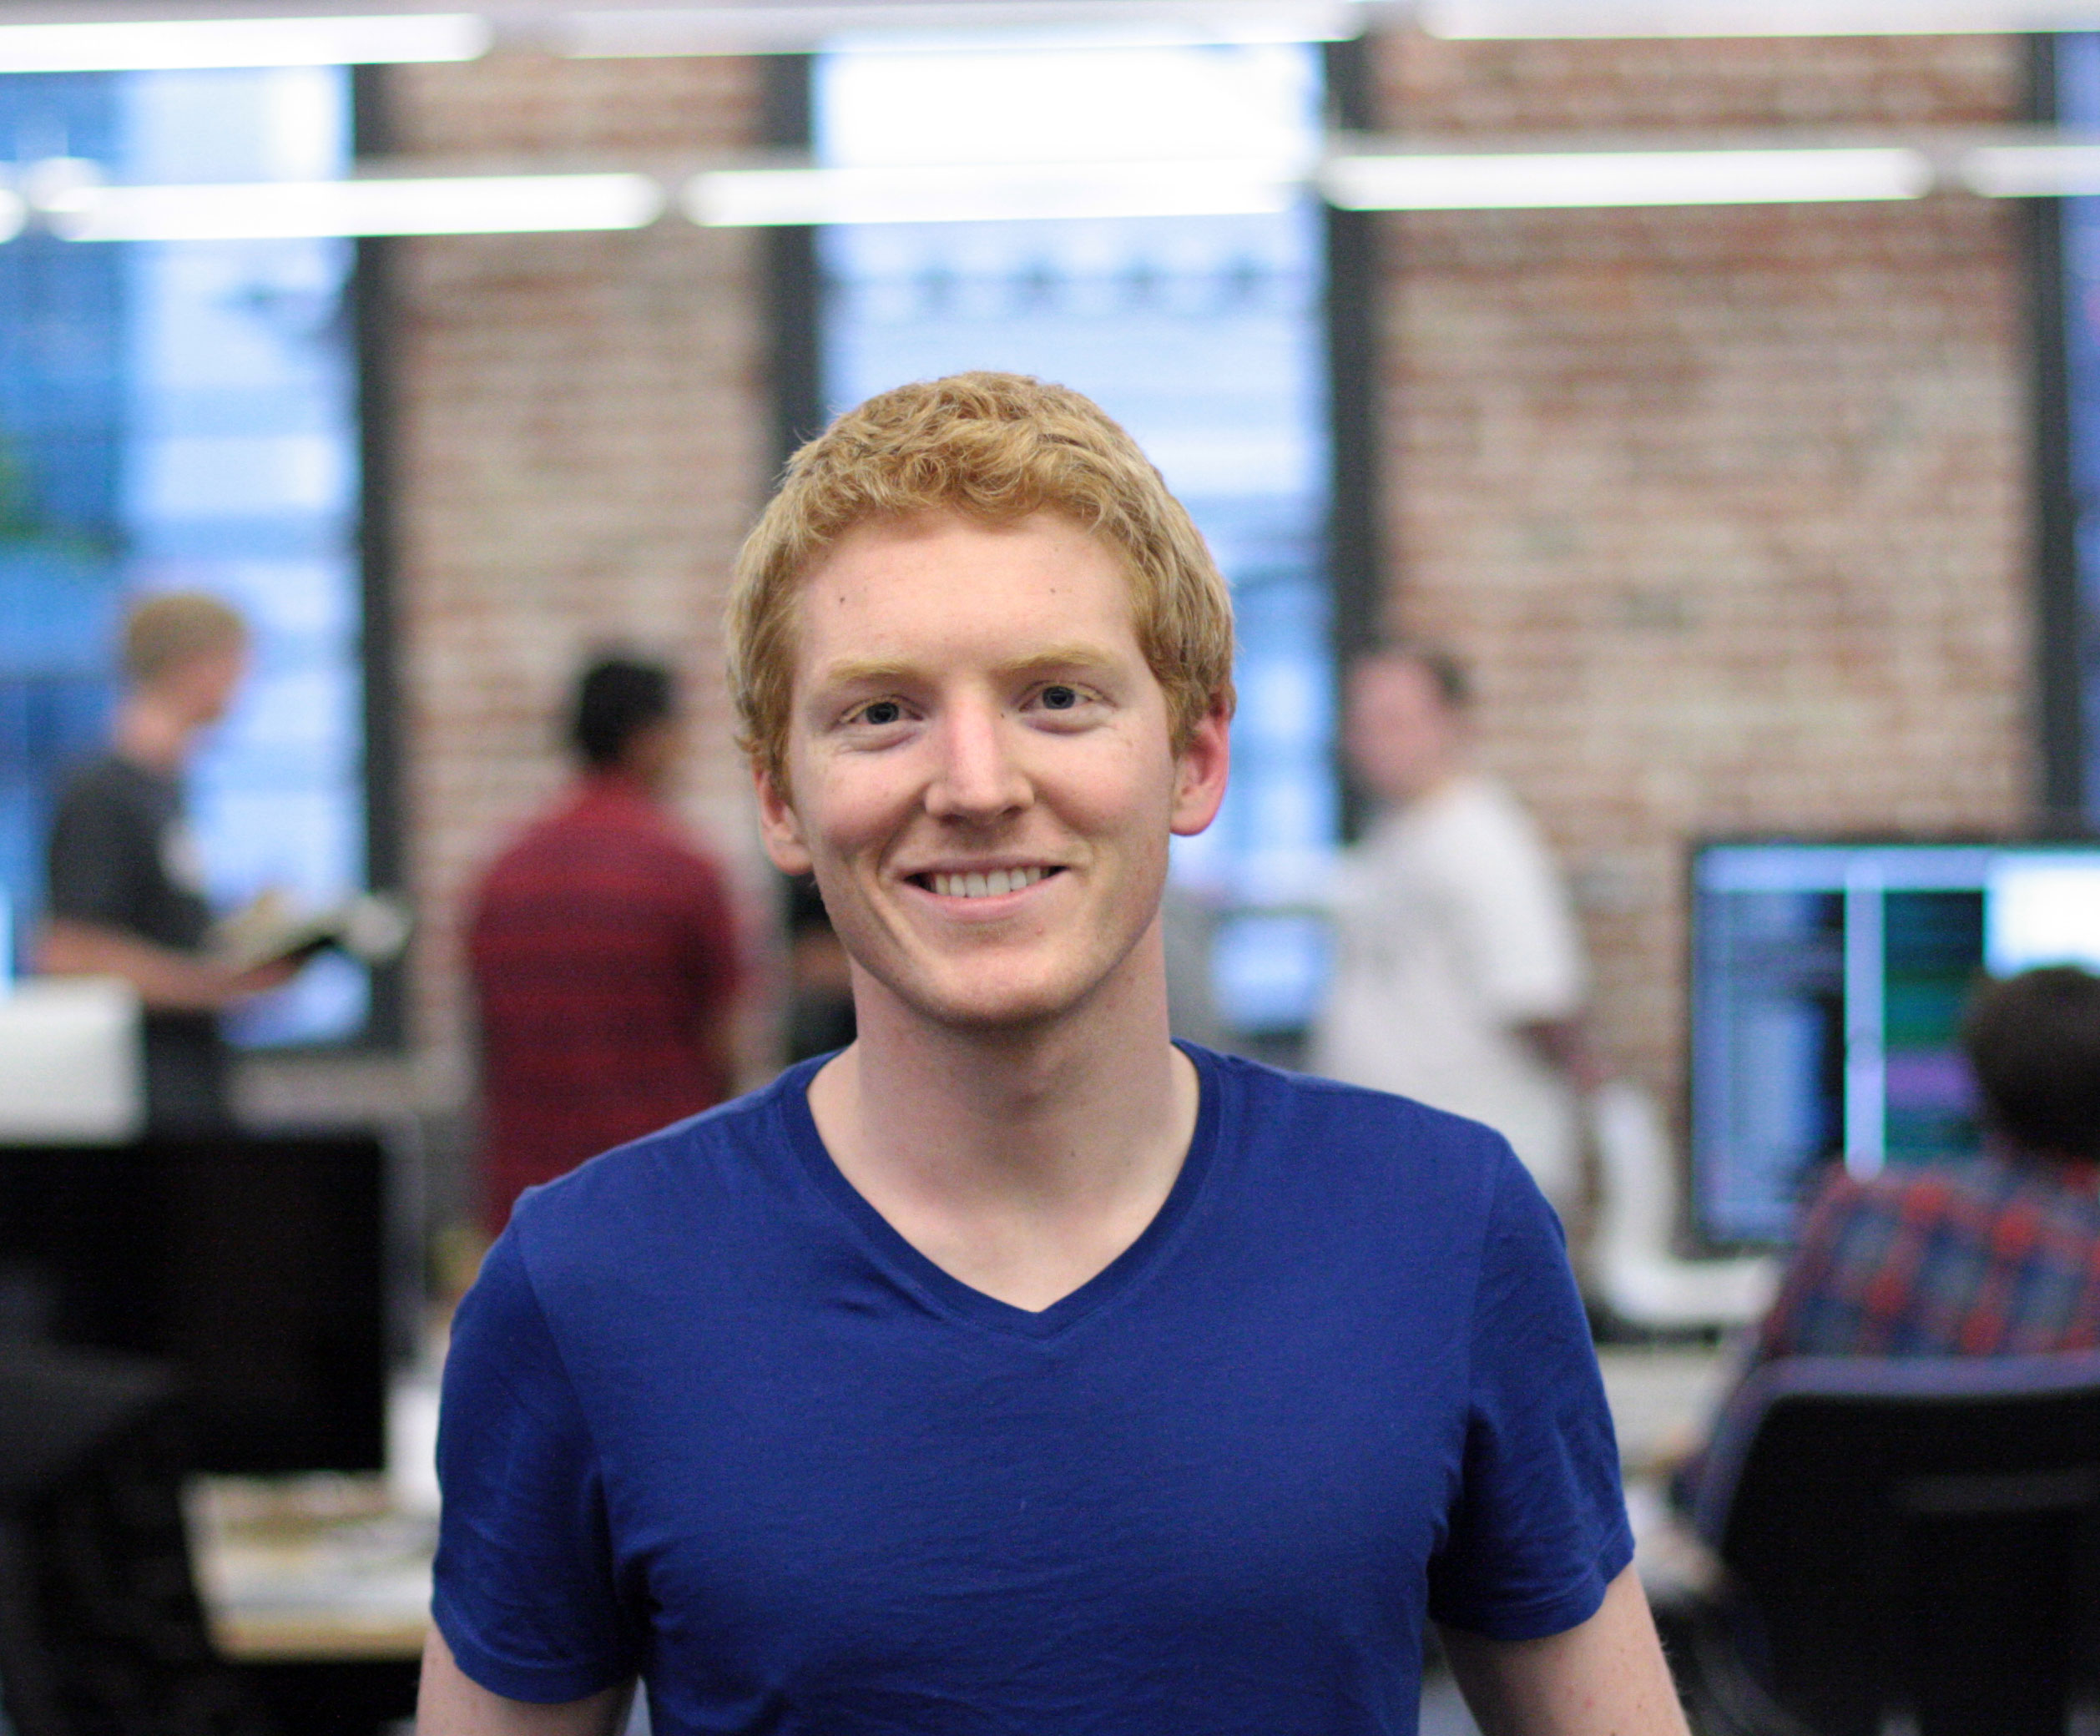 Stripe co-founder Patrick Collison